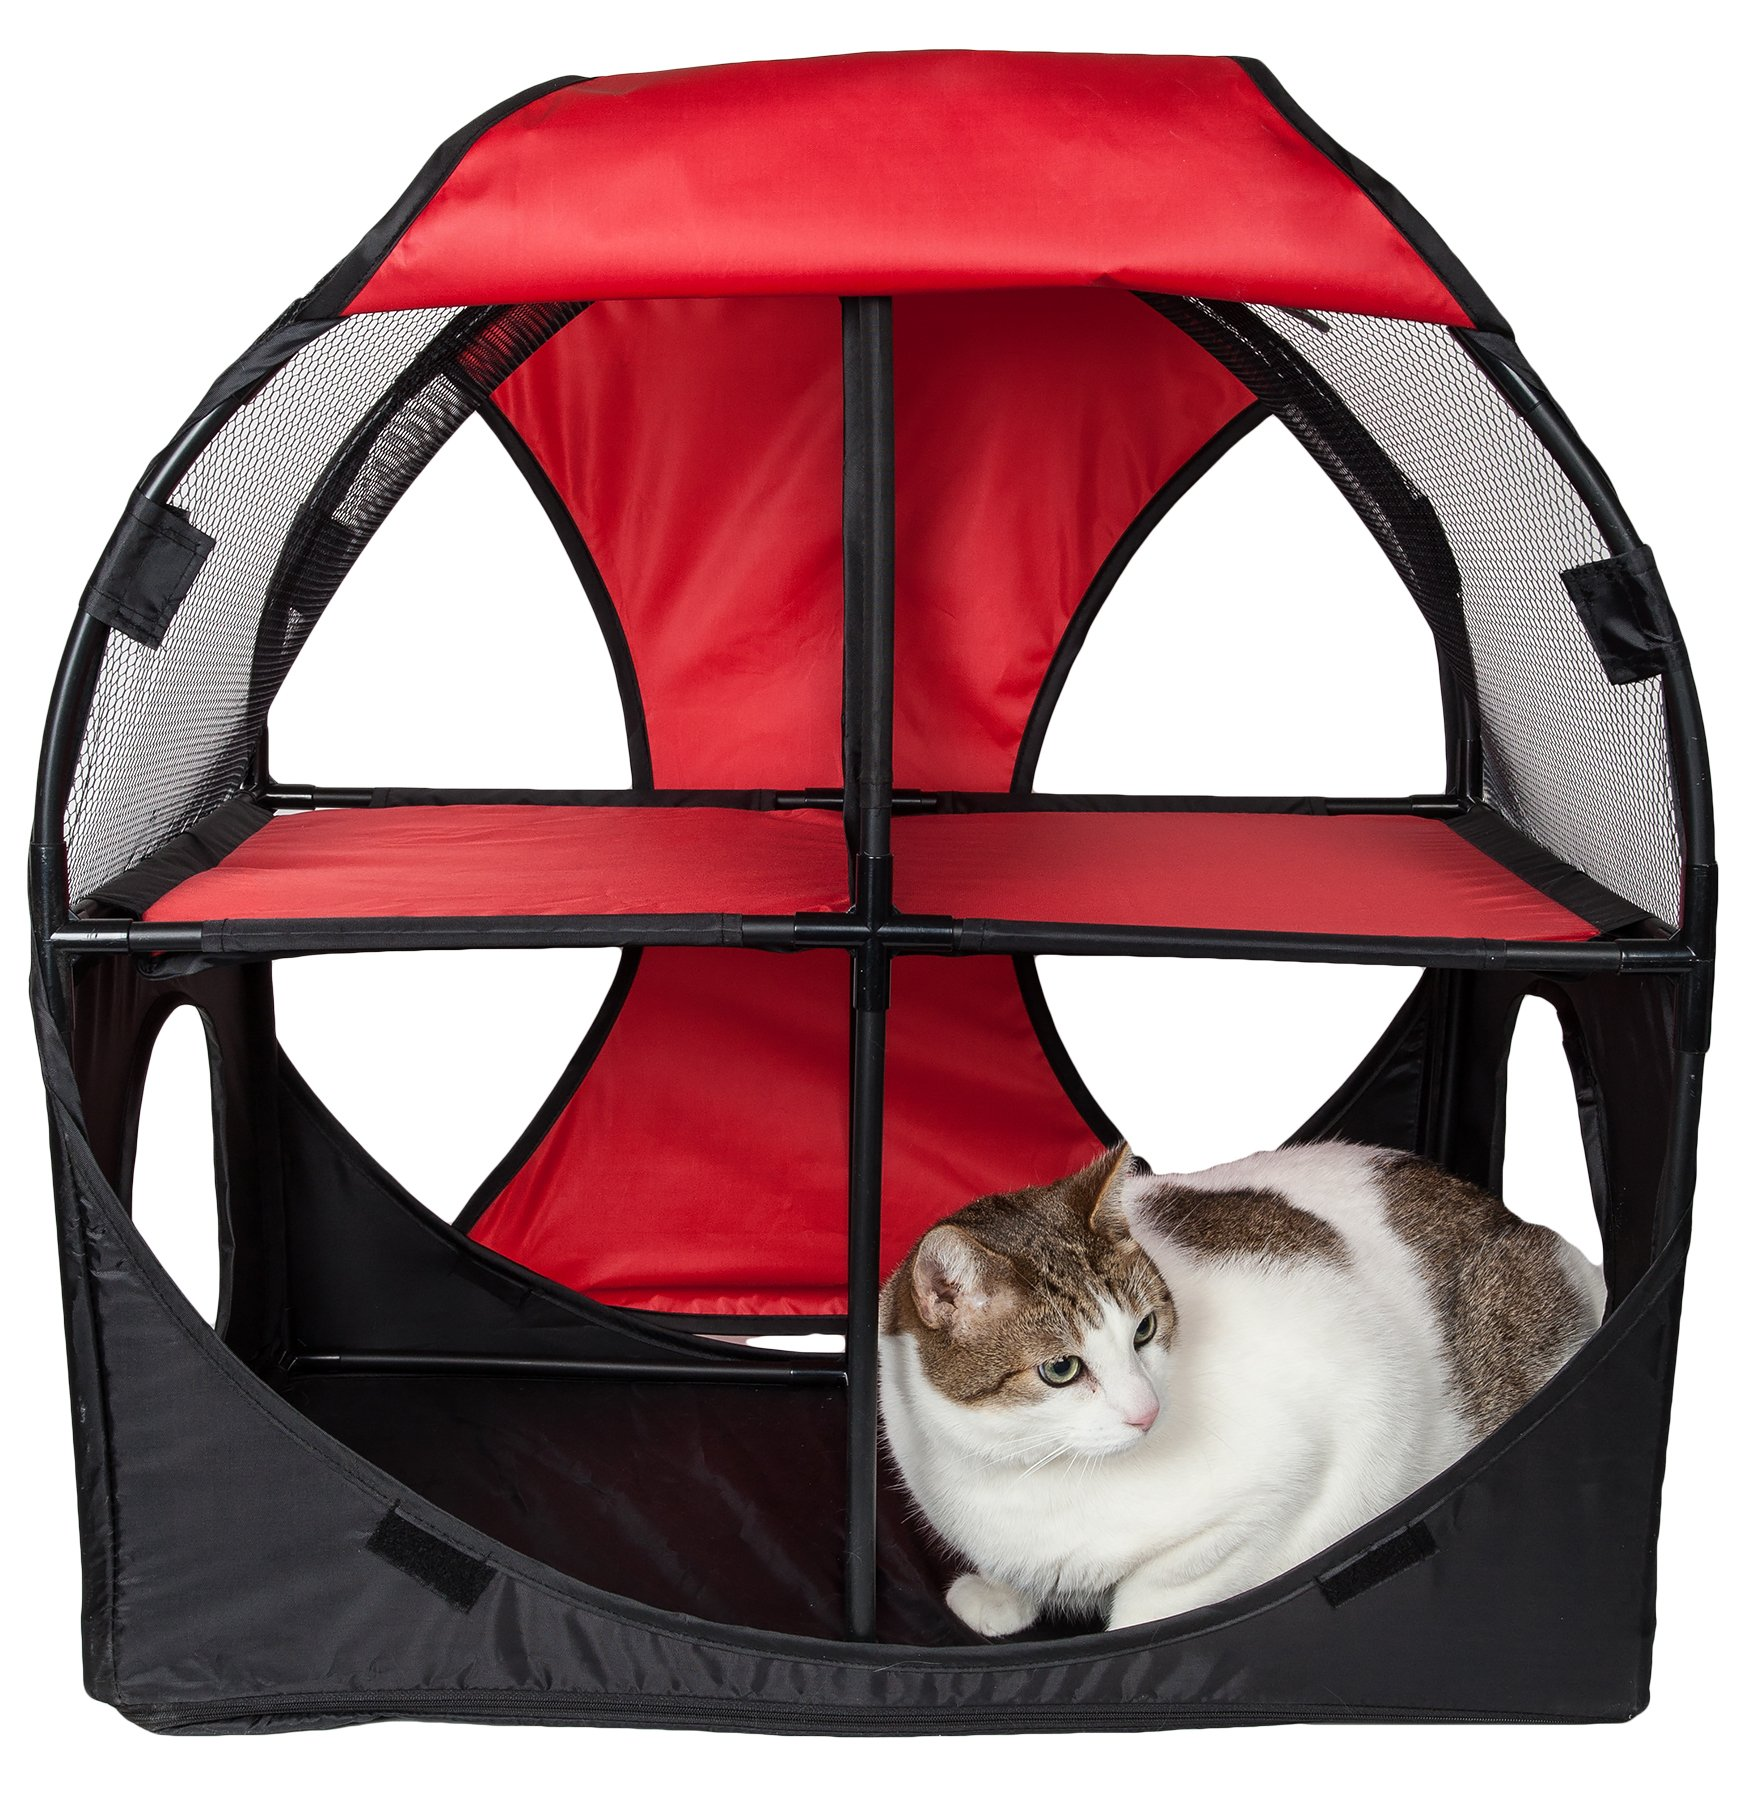 Pet Life Kitty-Play' Collapsible Travel Interactive Kitty Cat Tree Maze House Lounger Tunnel Lounge, One Size, Red and Black